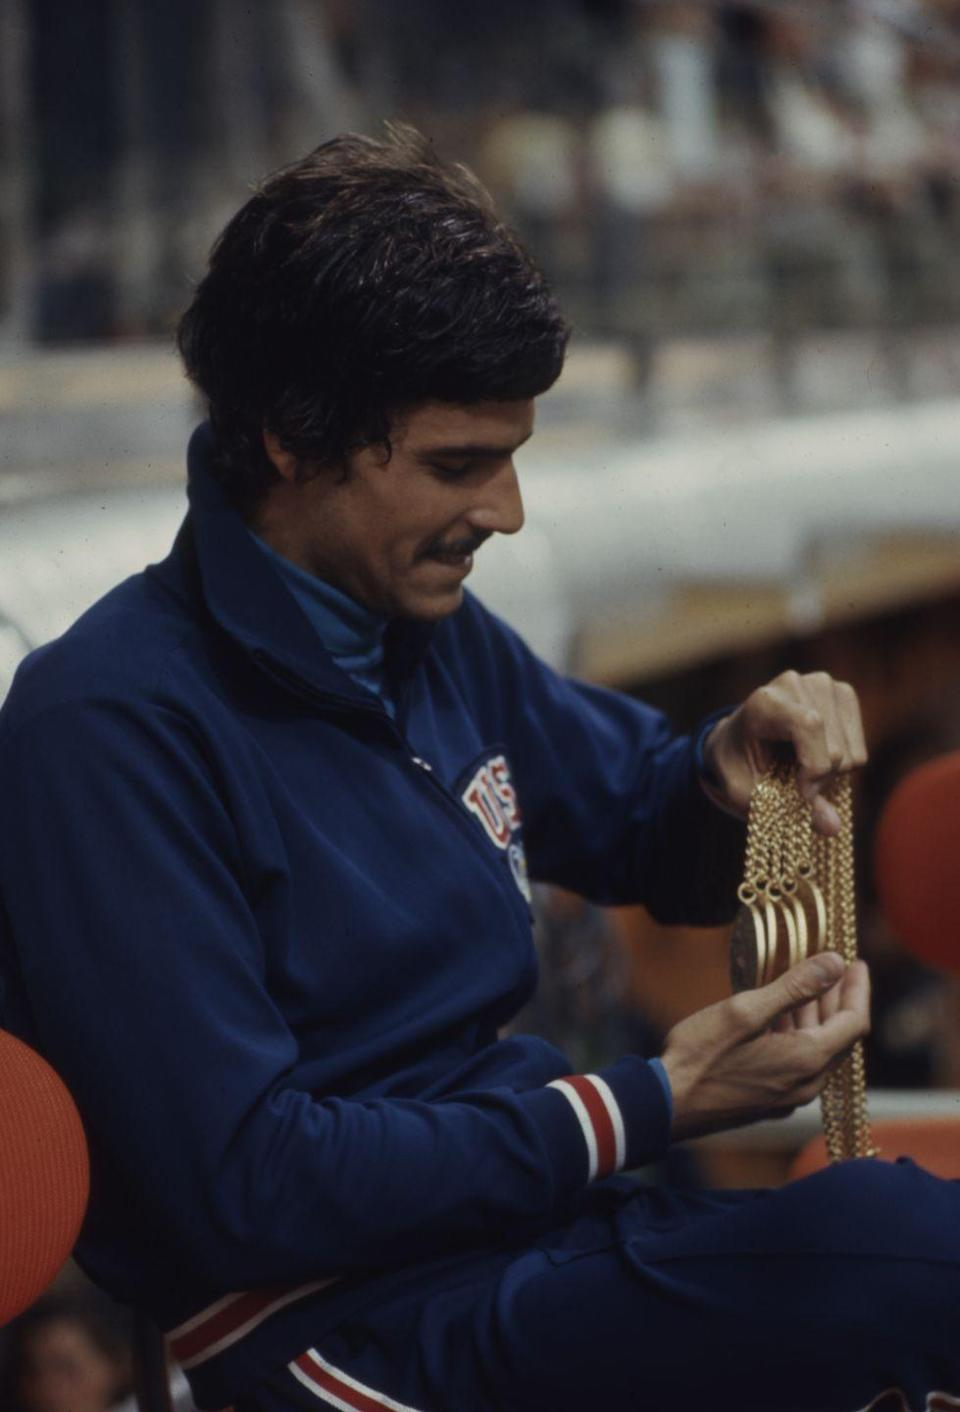 <p>Back in 1972, Mark Spitz was the hotshot on the American team, winning a total of seven gold medals at the Munich games for swimming.</p>